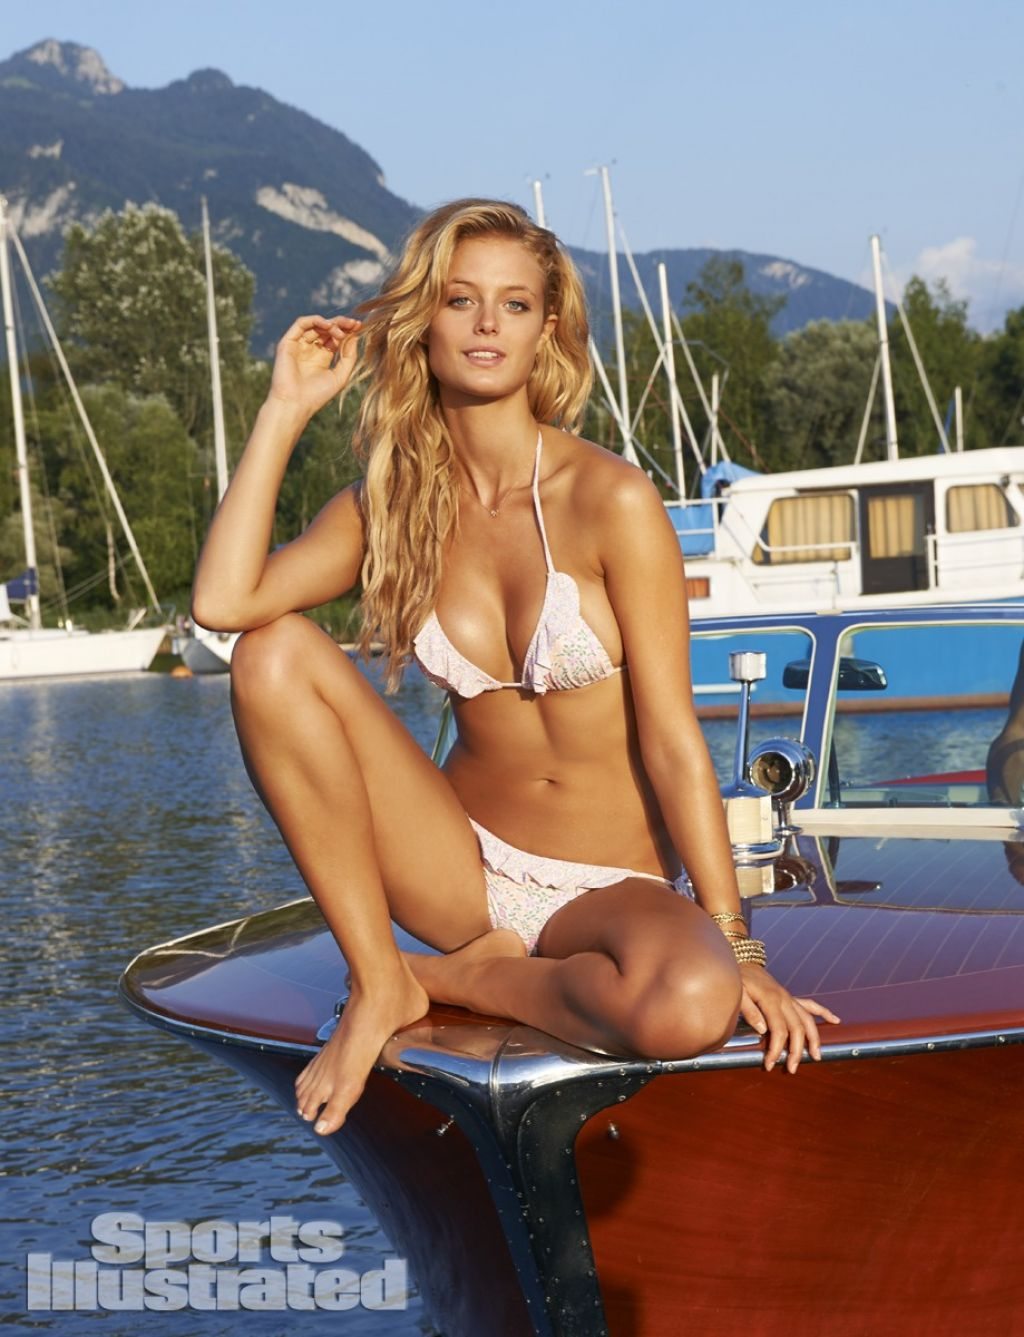 Kate Bock In Bikini Sports Illustrated 2014 Swimsuit Issue